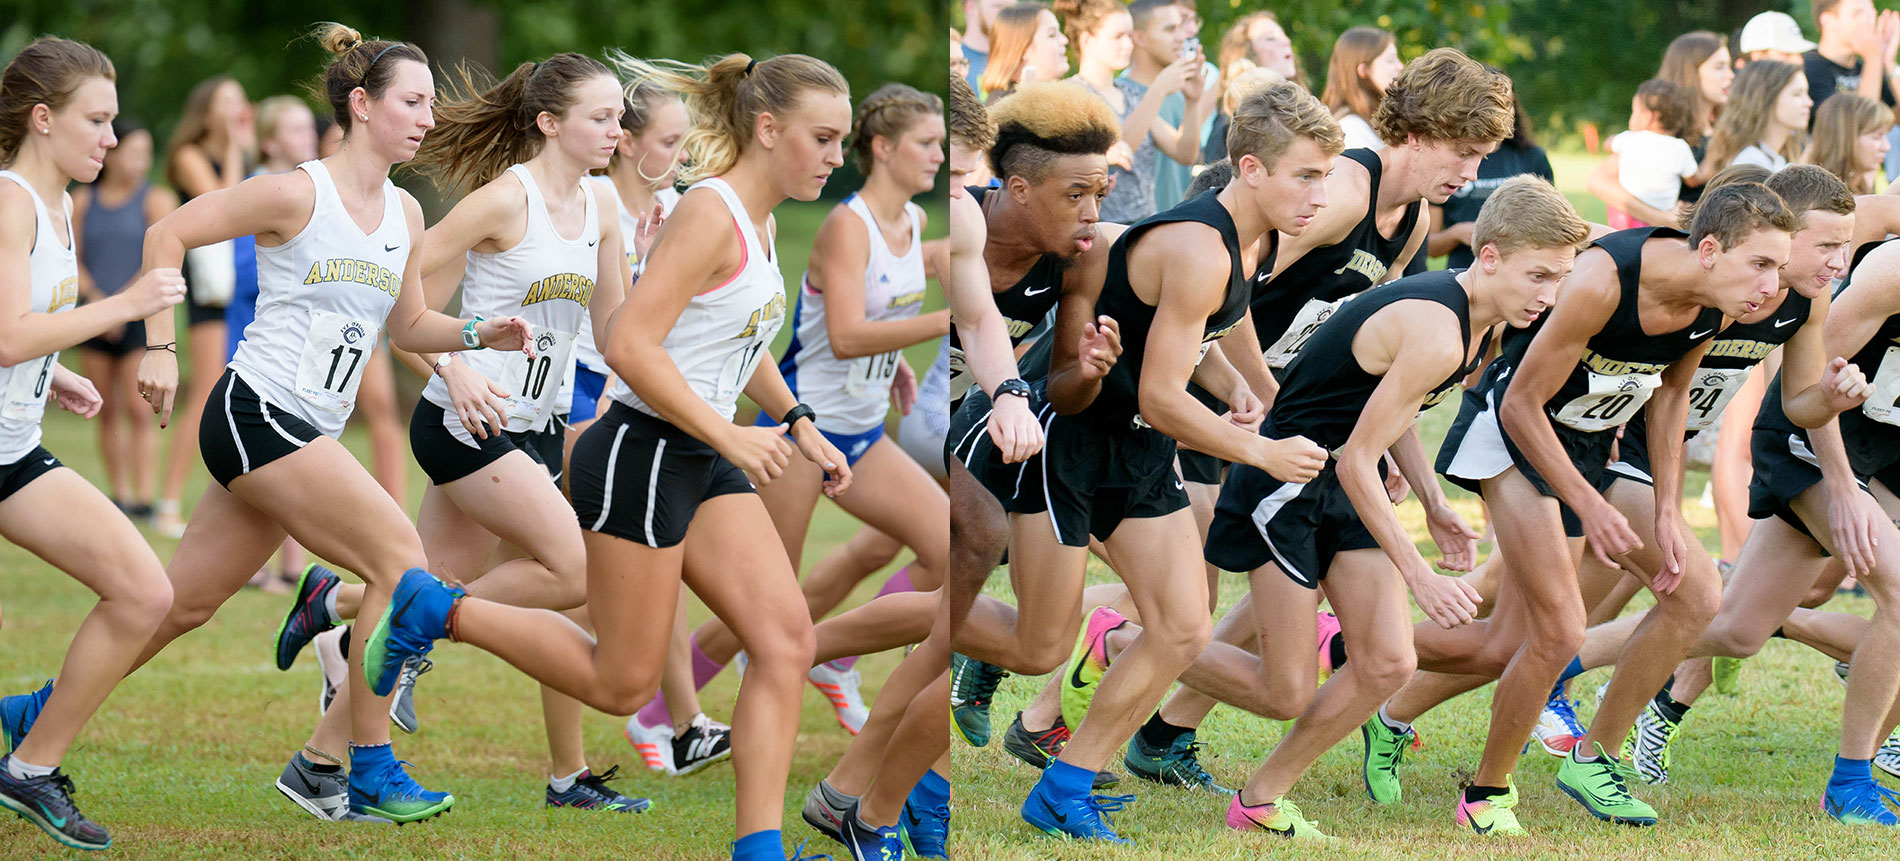 Cross Country to Make First-Ever Appearance at Piedmont College Invitational